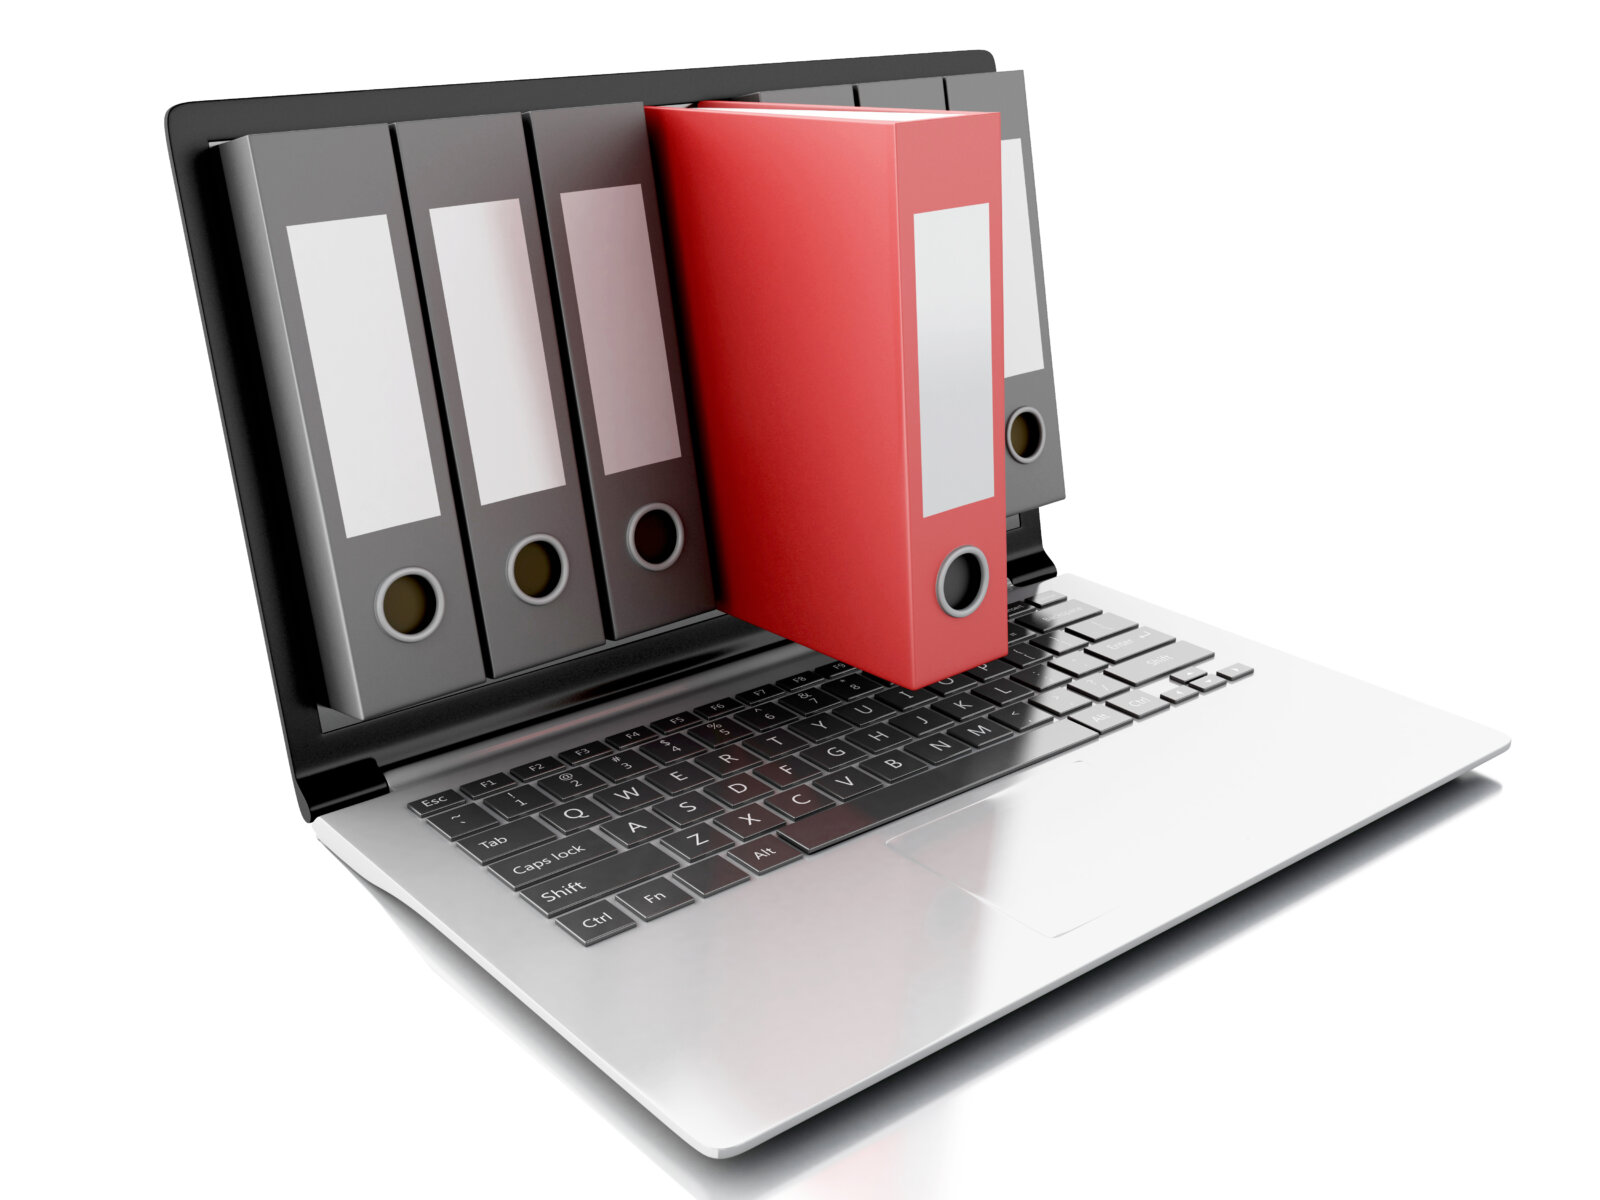 analyse digitale archivering